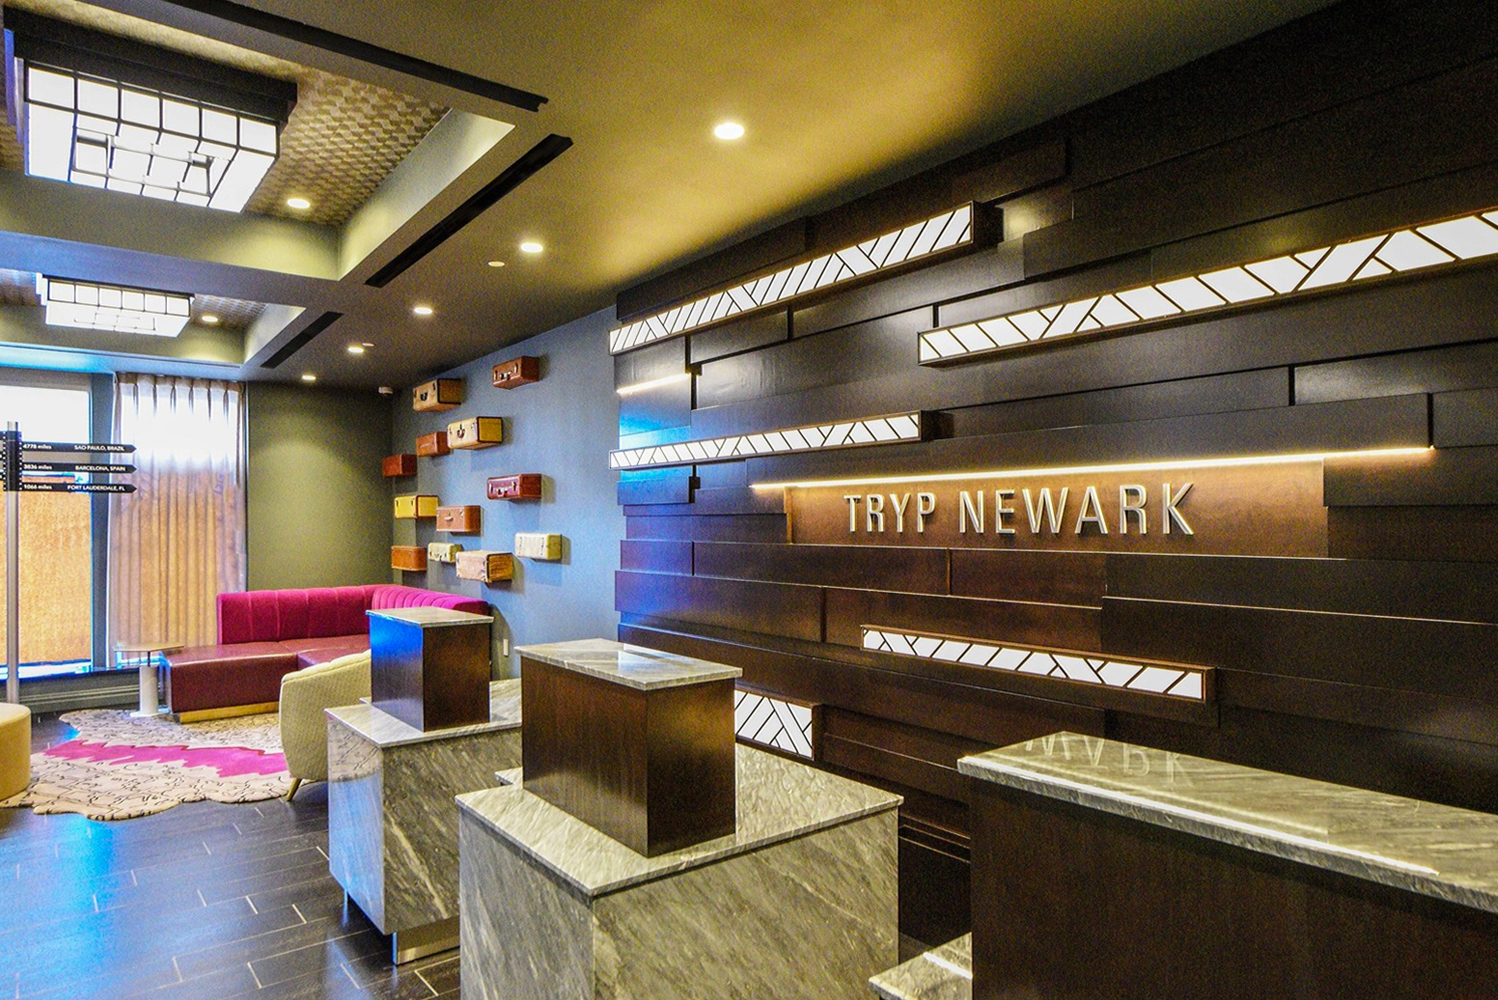 Wyndham Hotel Group opened its latest TRYP by Wyndham hotel in downtown Newark, N.J.